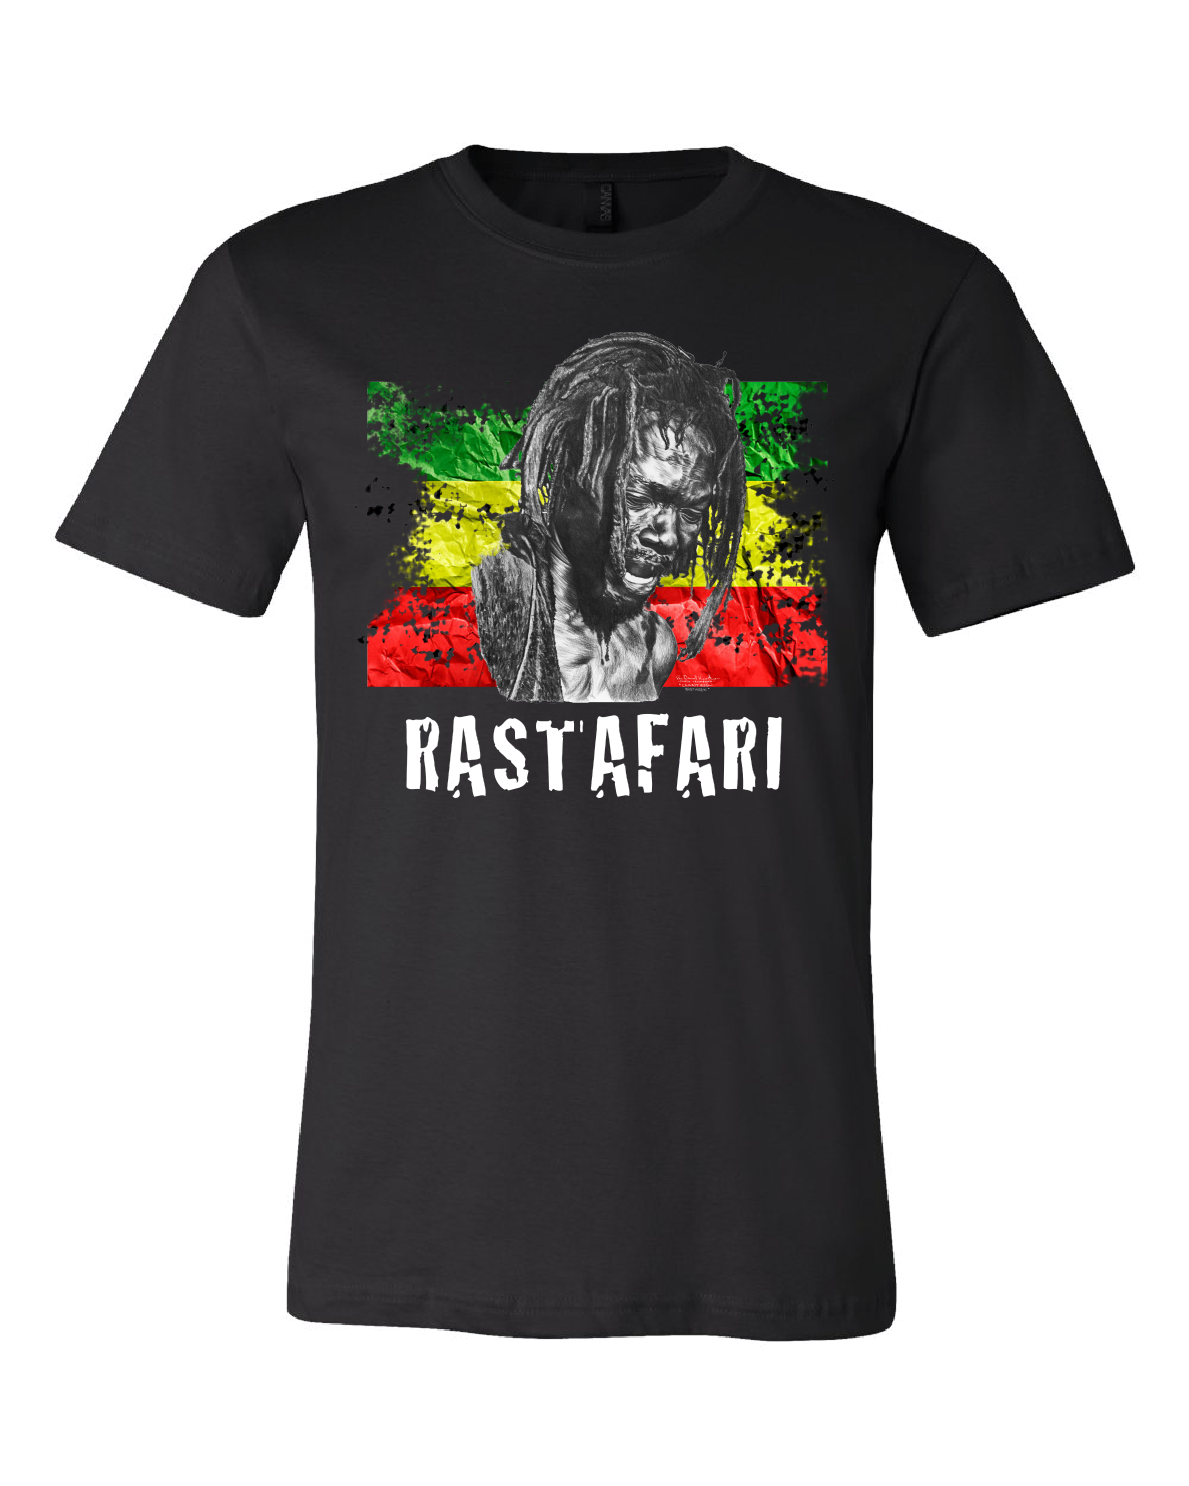 Chanting Rastafari Mens